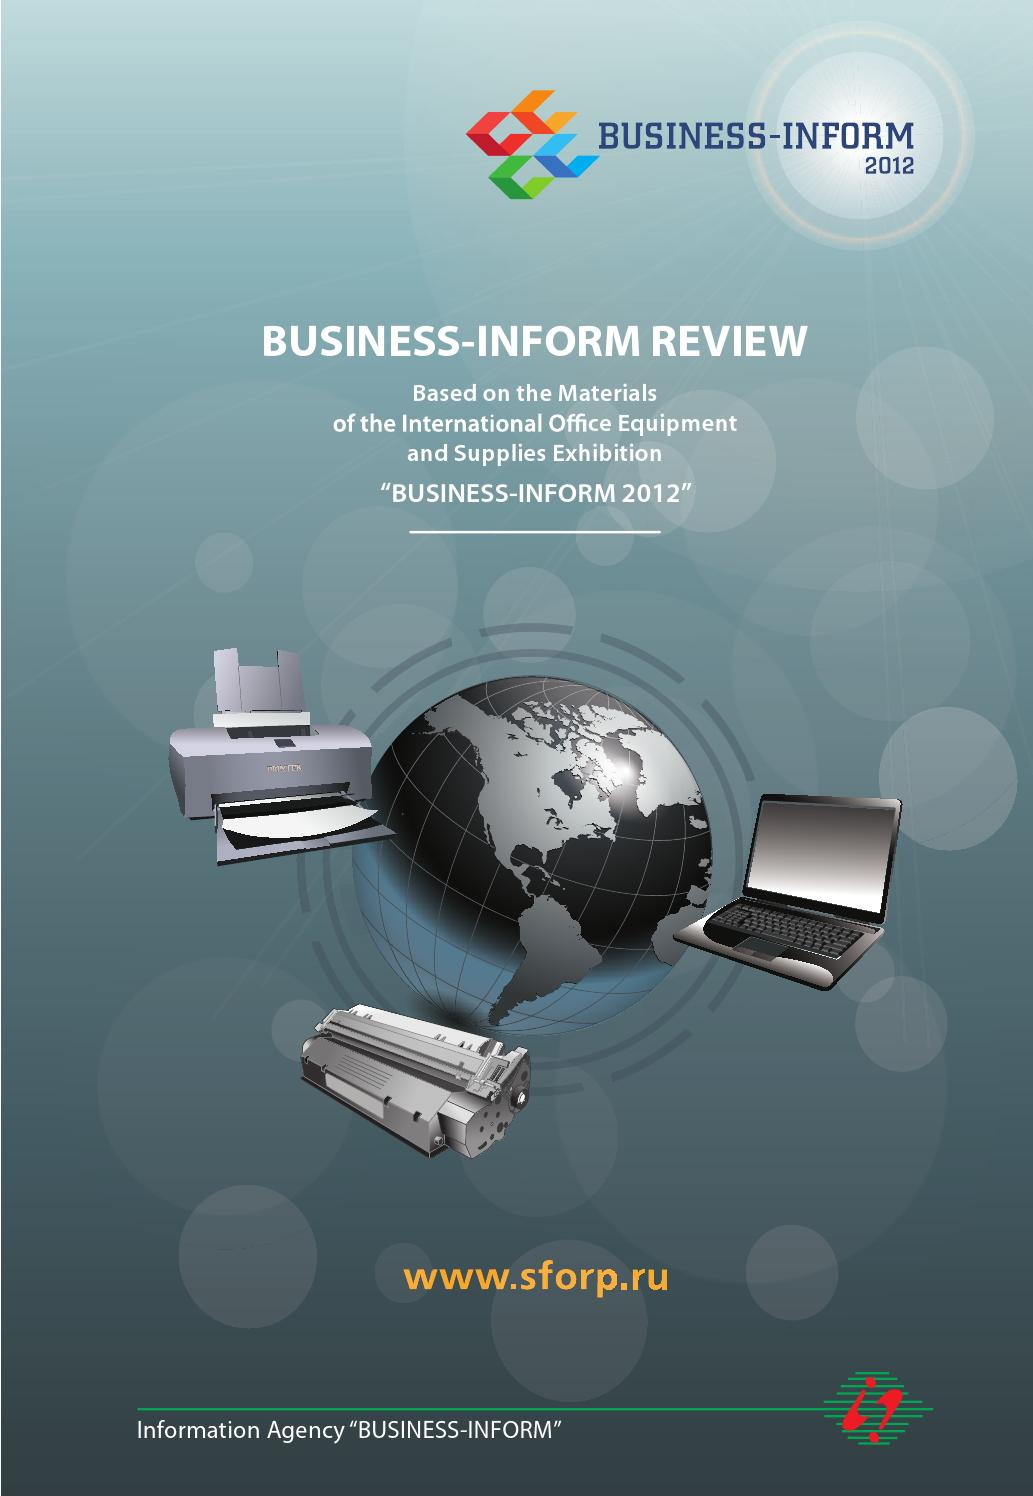 BUSINESS-INFORM REVIEW #1, 2012 by Business-Inform - issuu